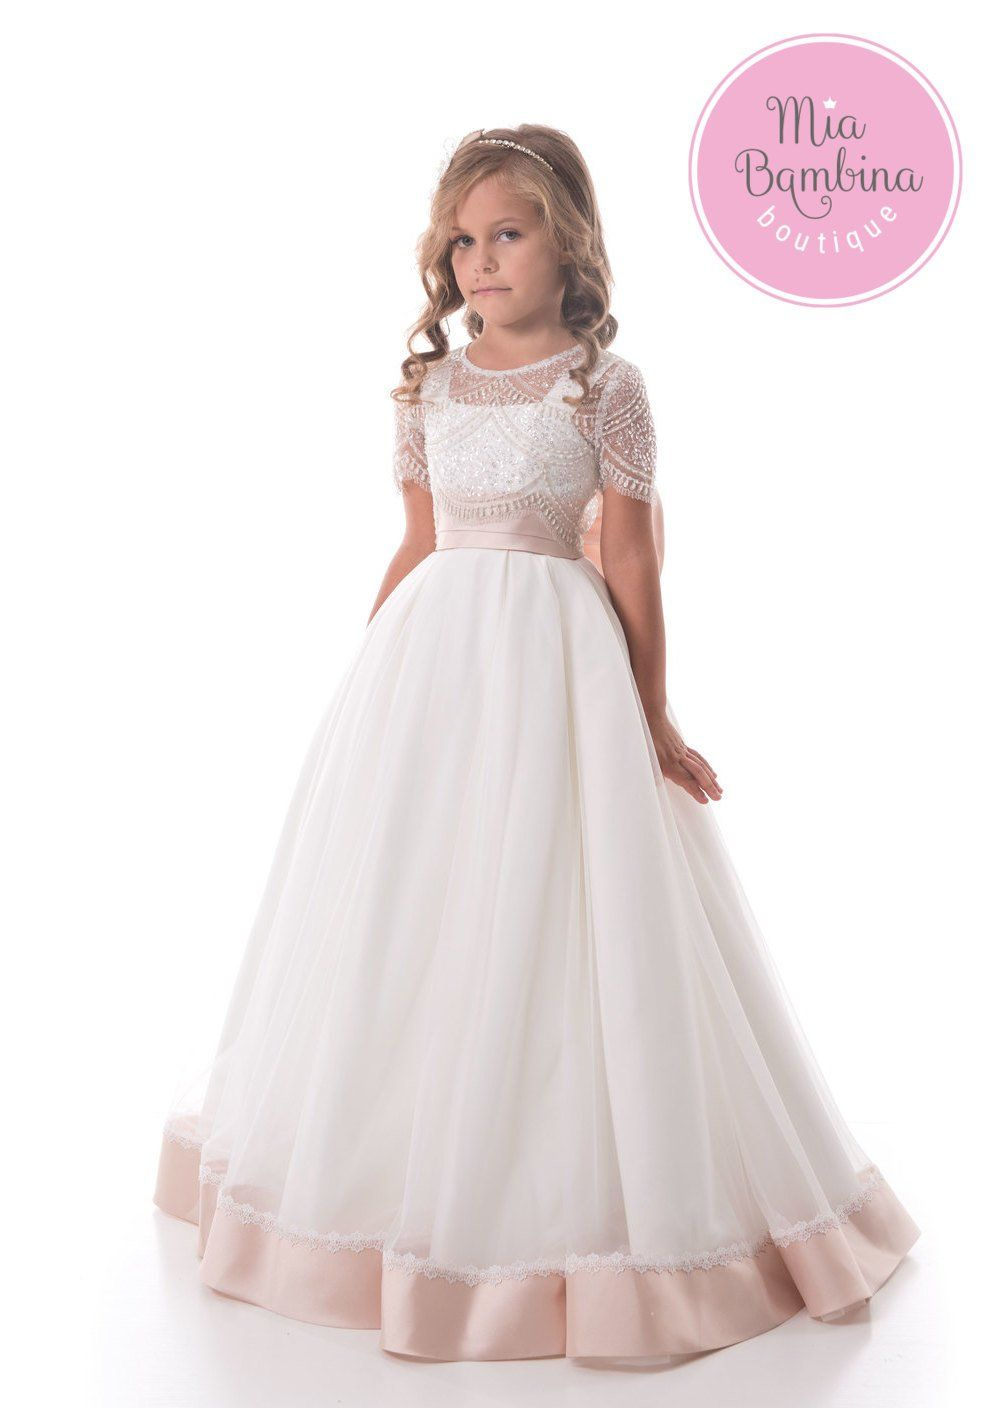 dd27f6c30 A beautiful princess dress for flower girls from 3 year to 14 years old. The  tulle lace gown features a lace overlay bodice, wide straps, and  floor-length ...